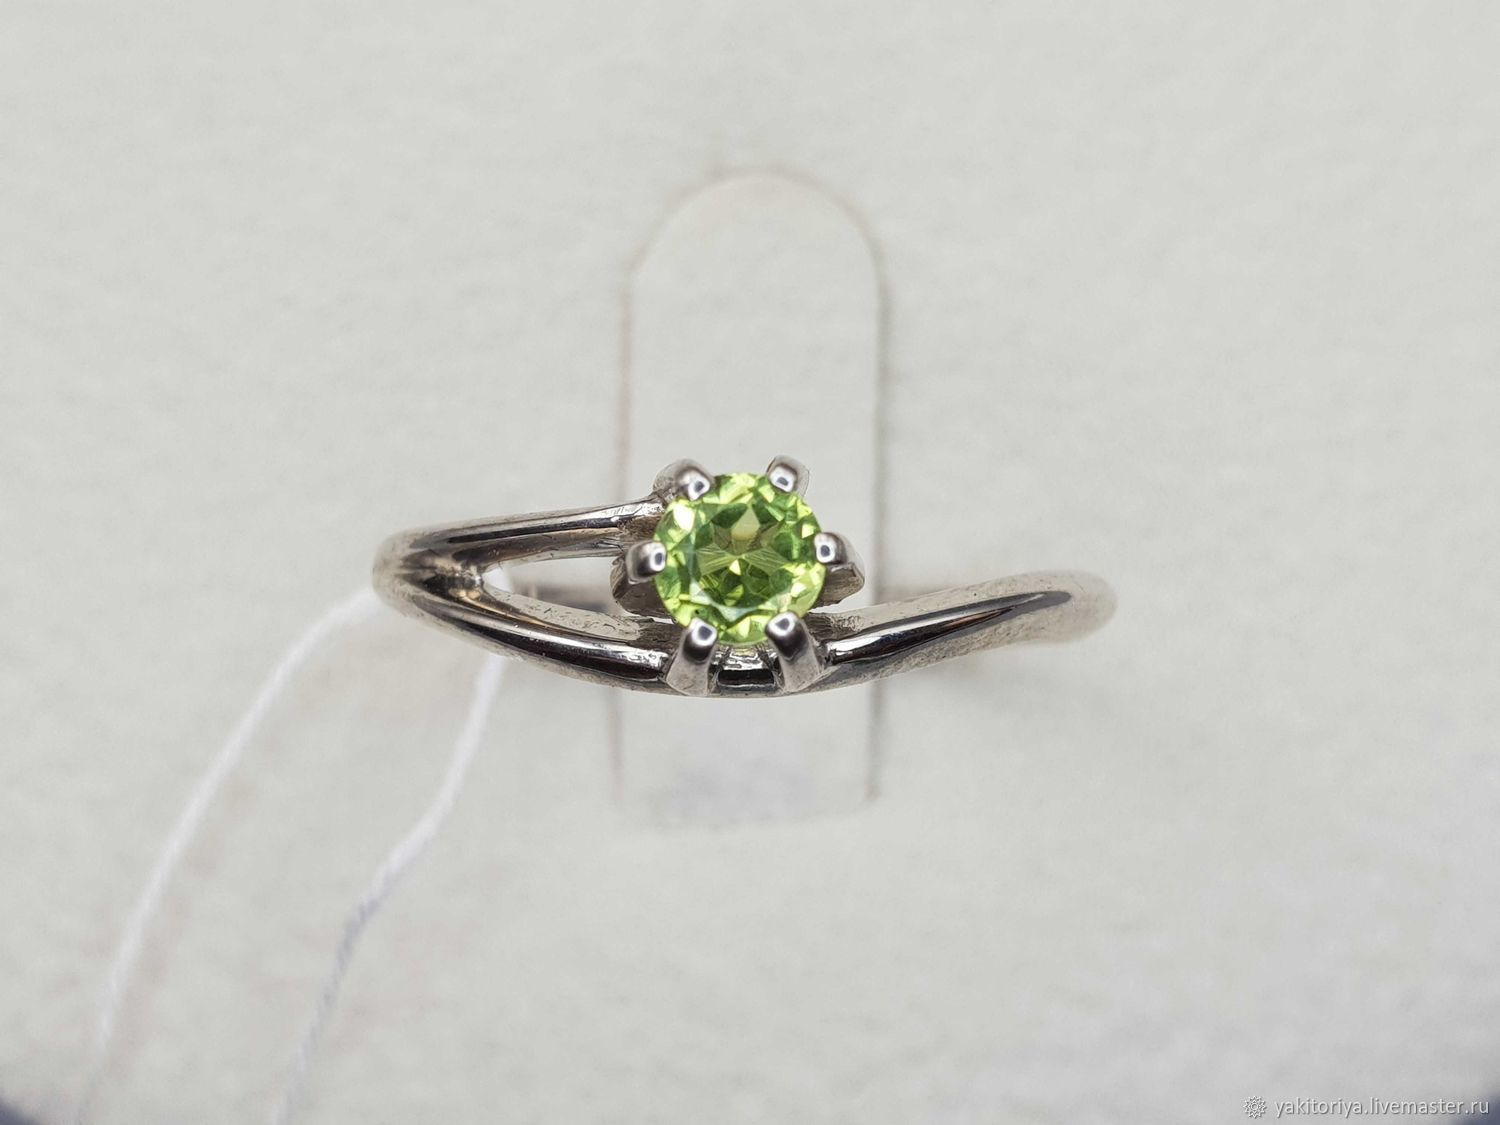 Silver ring with chrysolite 4 mm, Rings, Moscow,  Фото №1